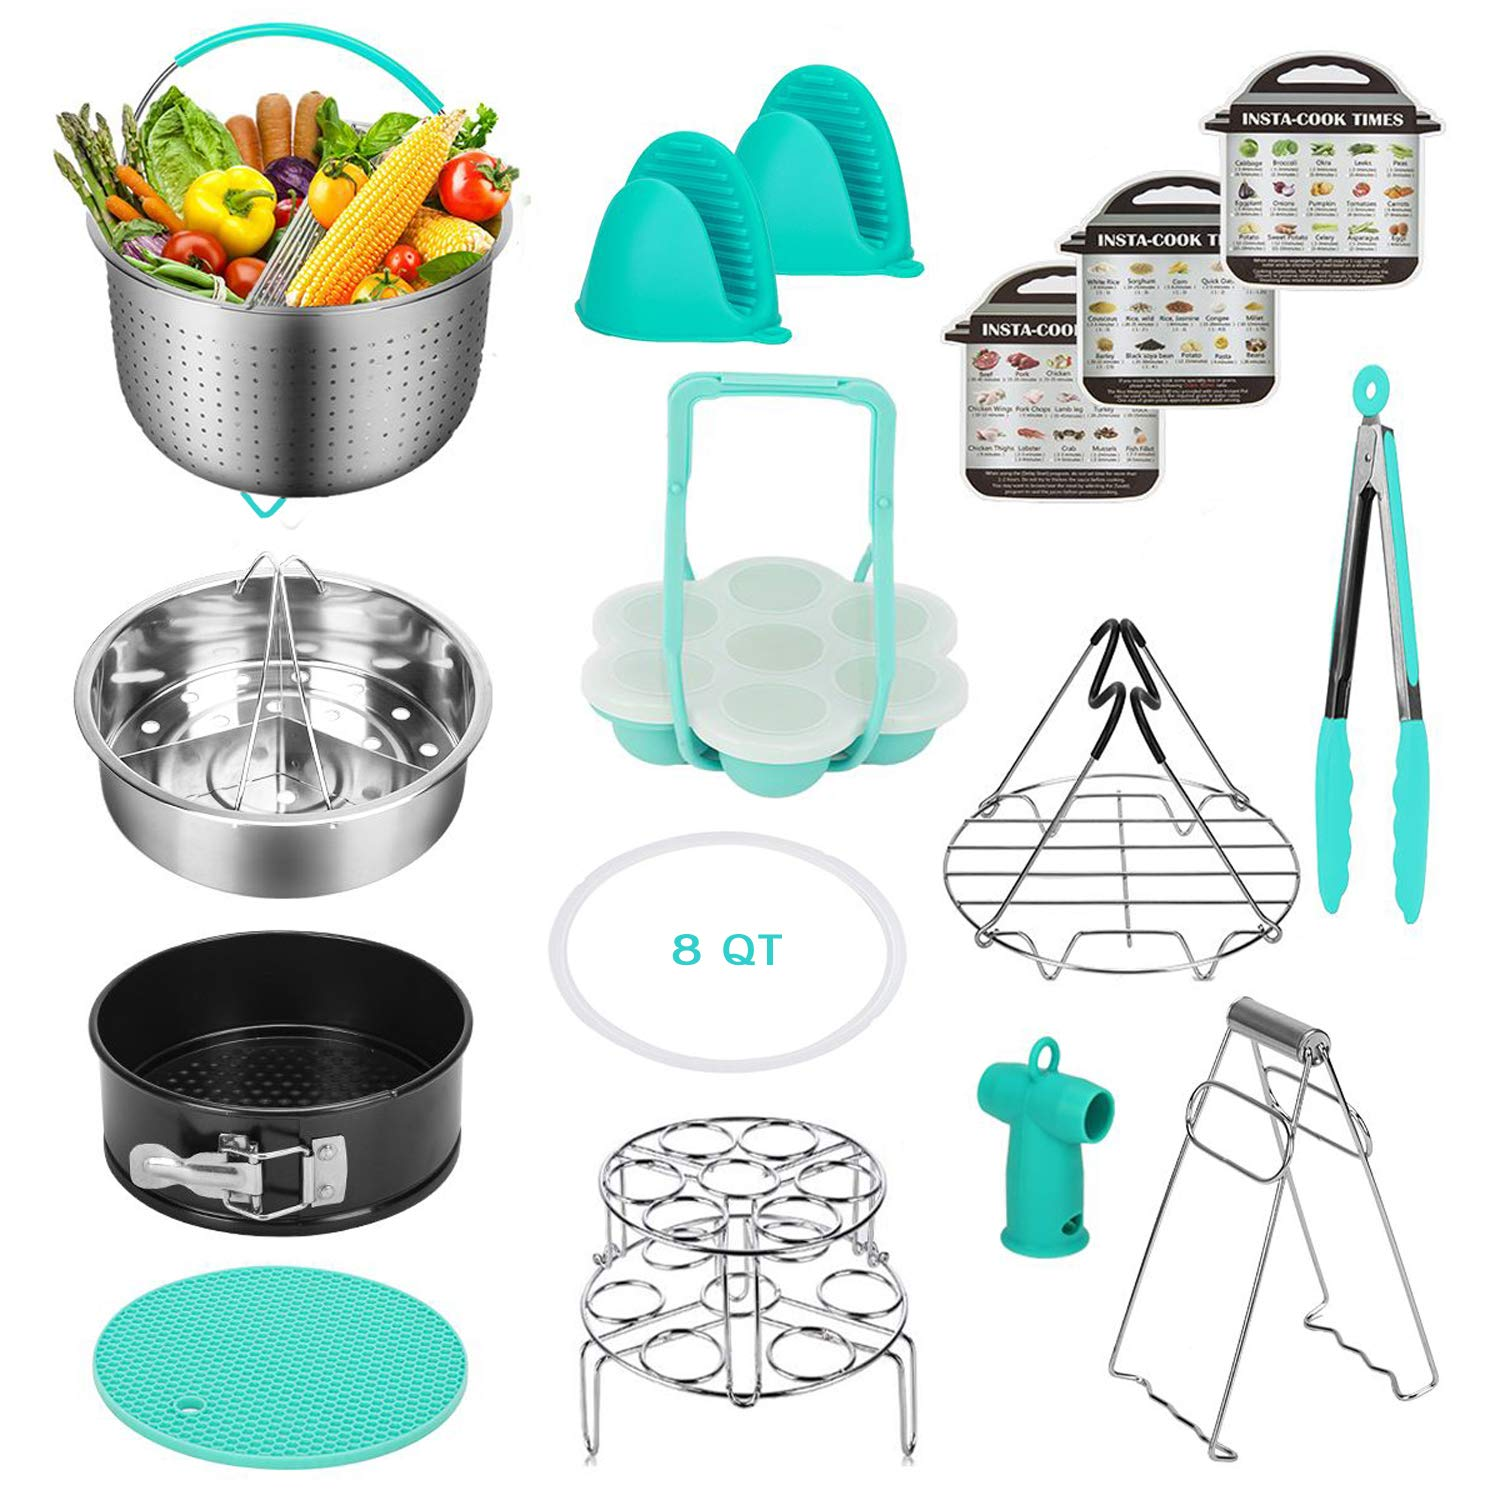 Instant Pot Accessories Set Compatible with 8,9 Qt - 8 Qt Steamer Basket, Springform Pan, Egg Steamer Rack, Silicon Egg Bites Mold, Magnetic Cheat Sheets and More (8 QT Mint Green)